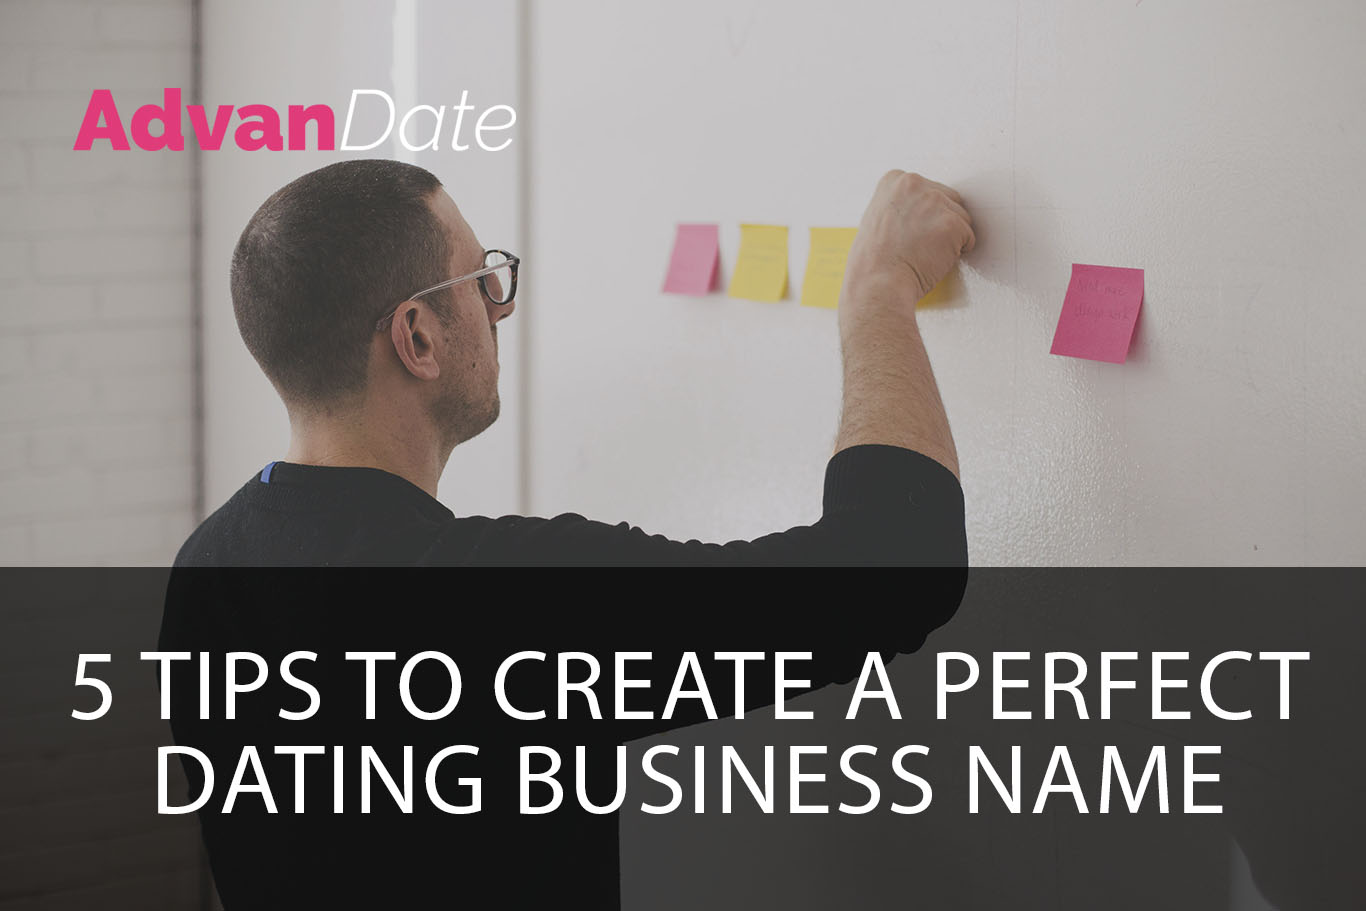 5 tips to create a perfect dating business name